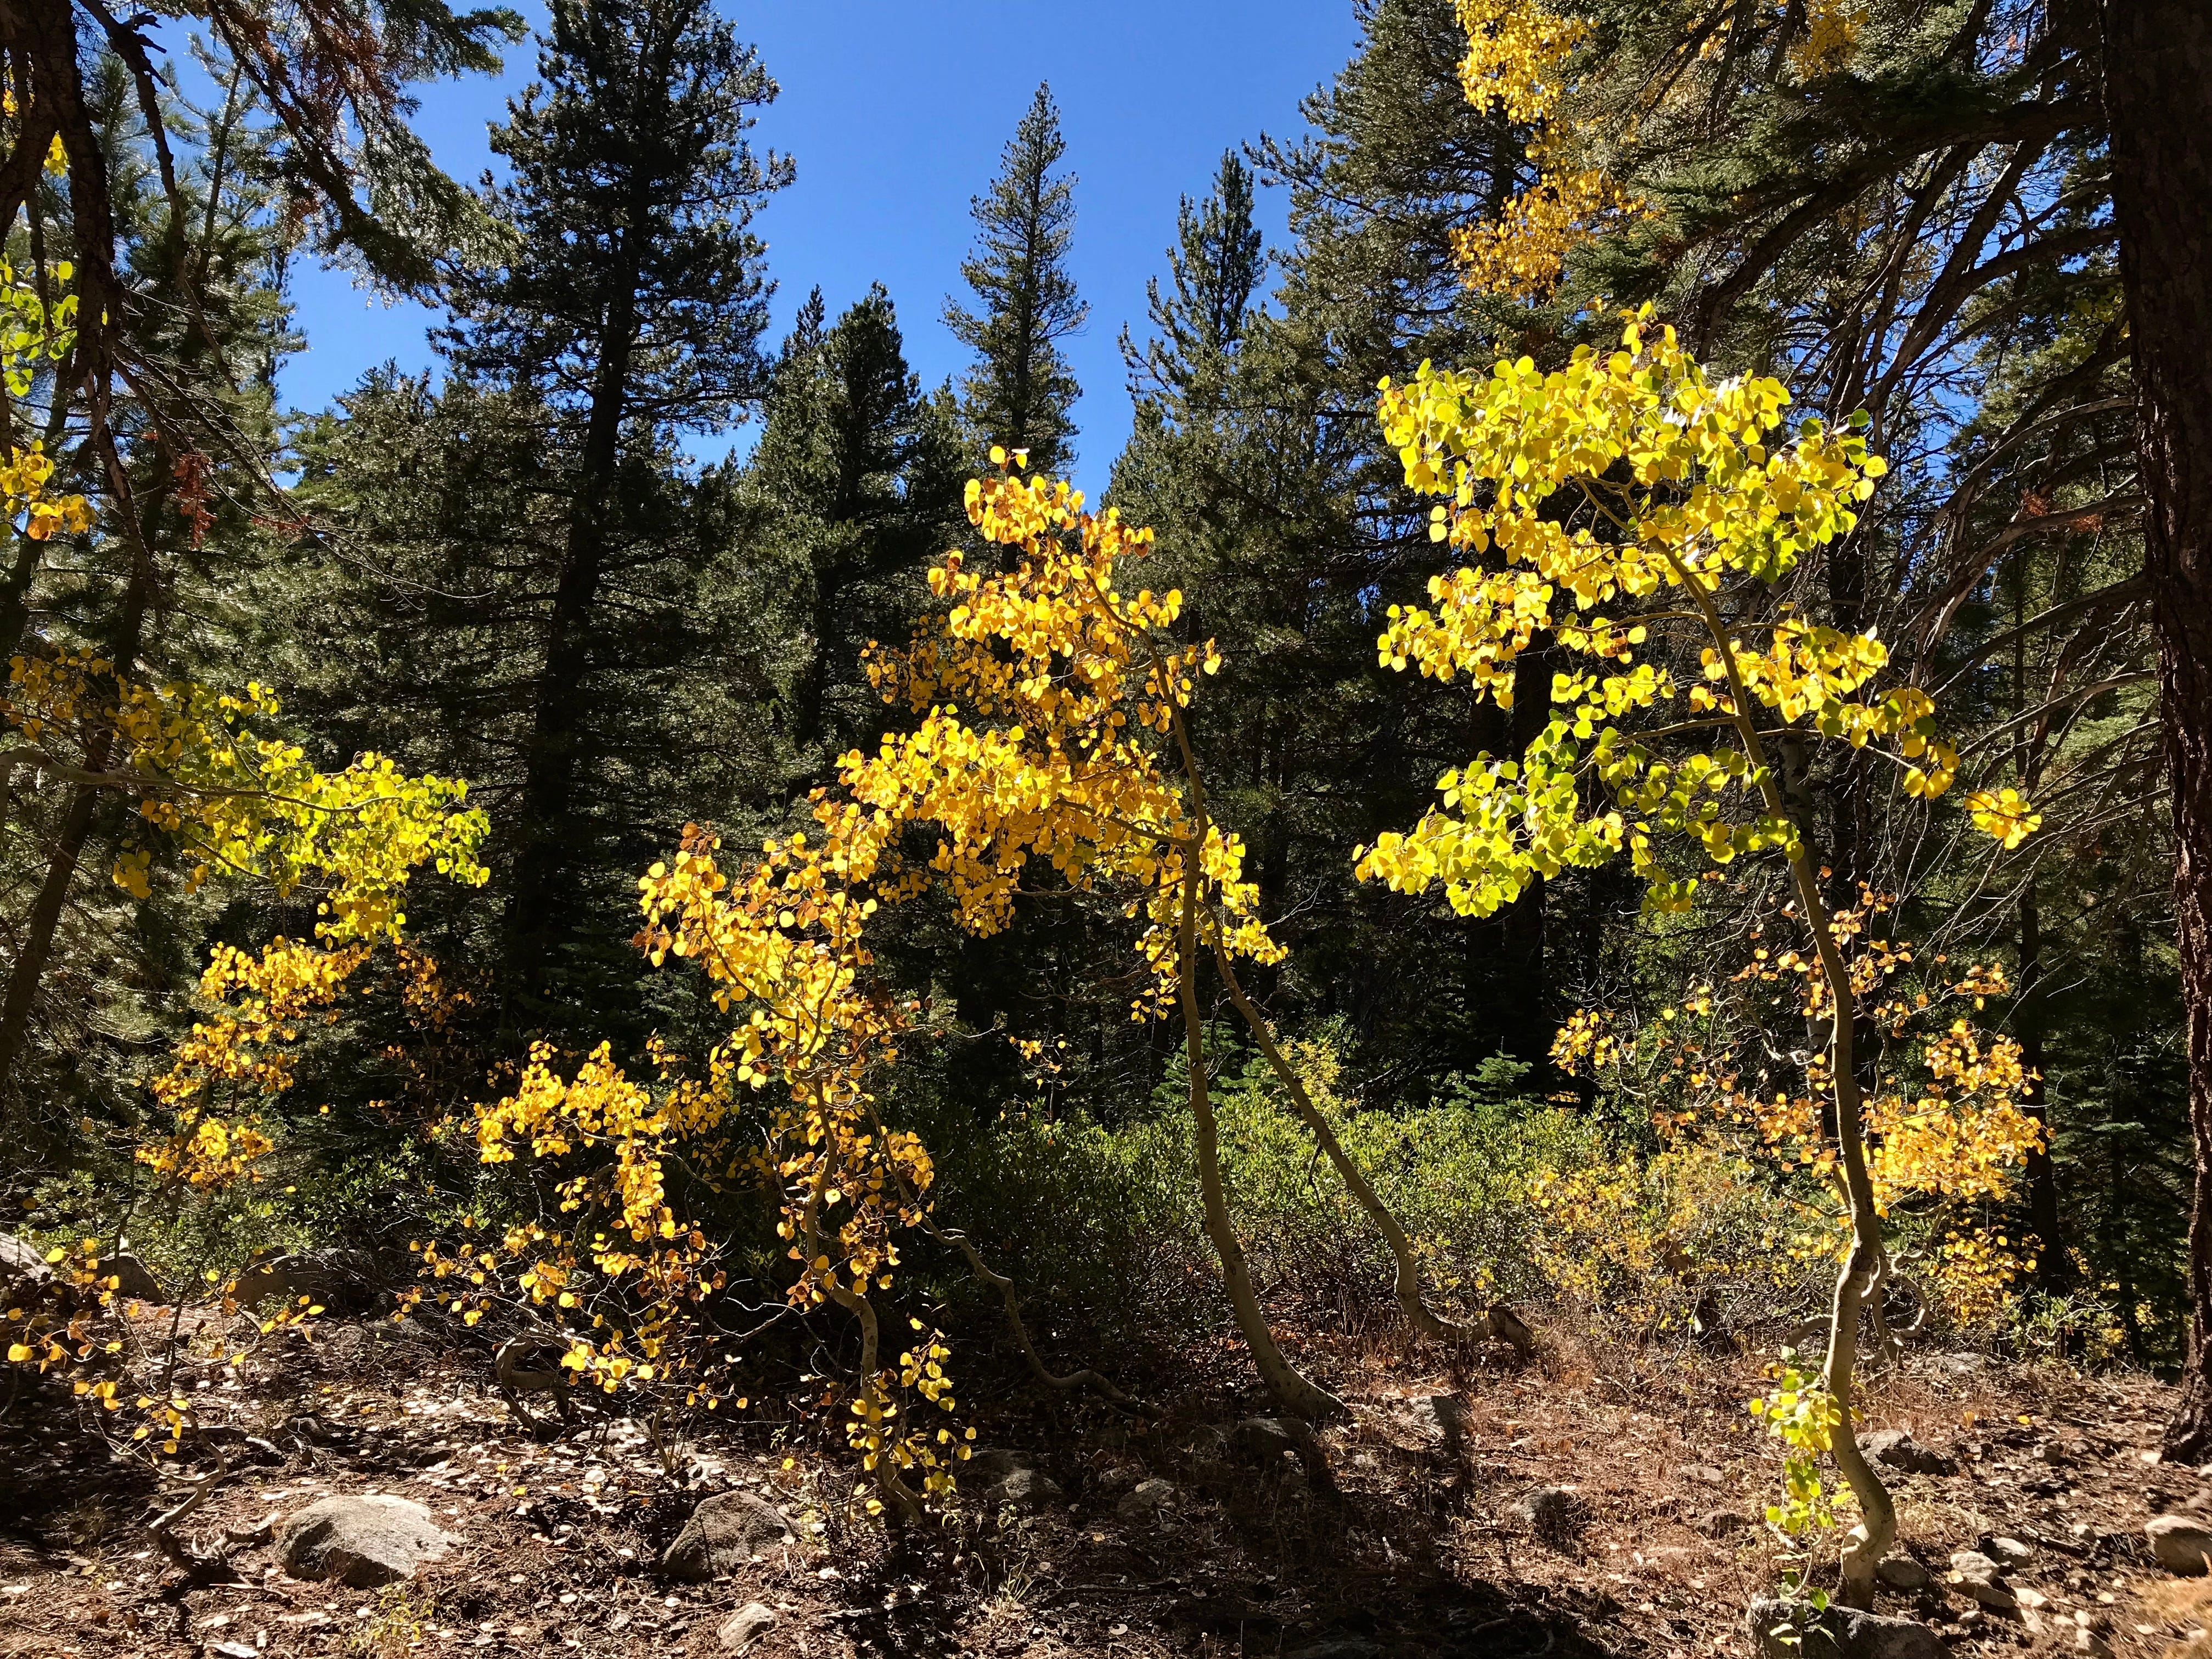 Fall colors along Mt. Rose Hwy. All photo were taken with a iPhone 7.